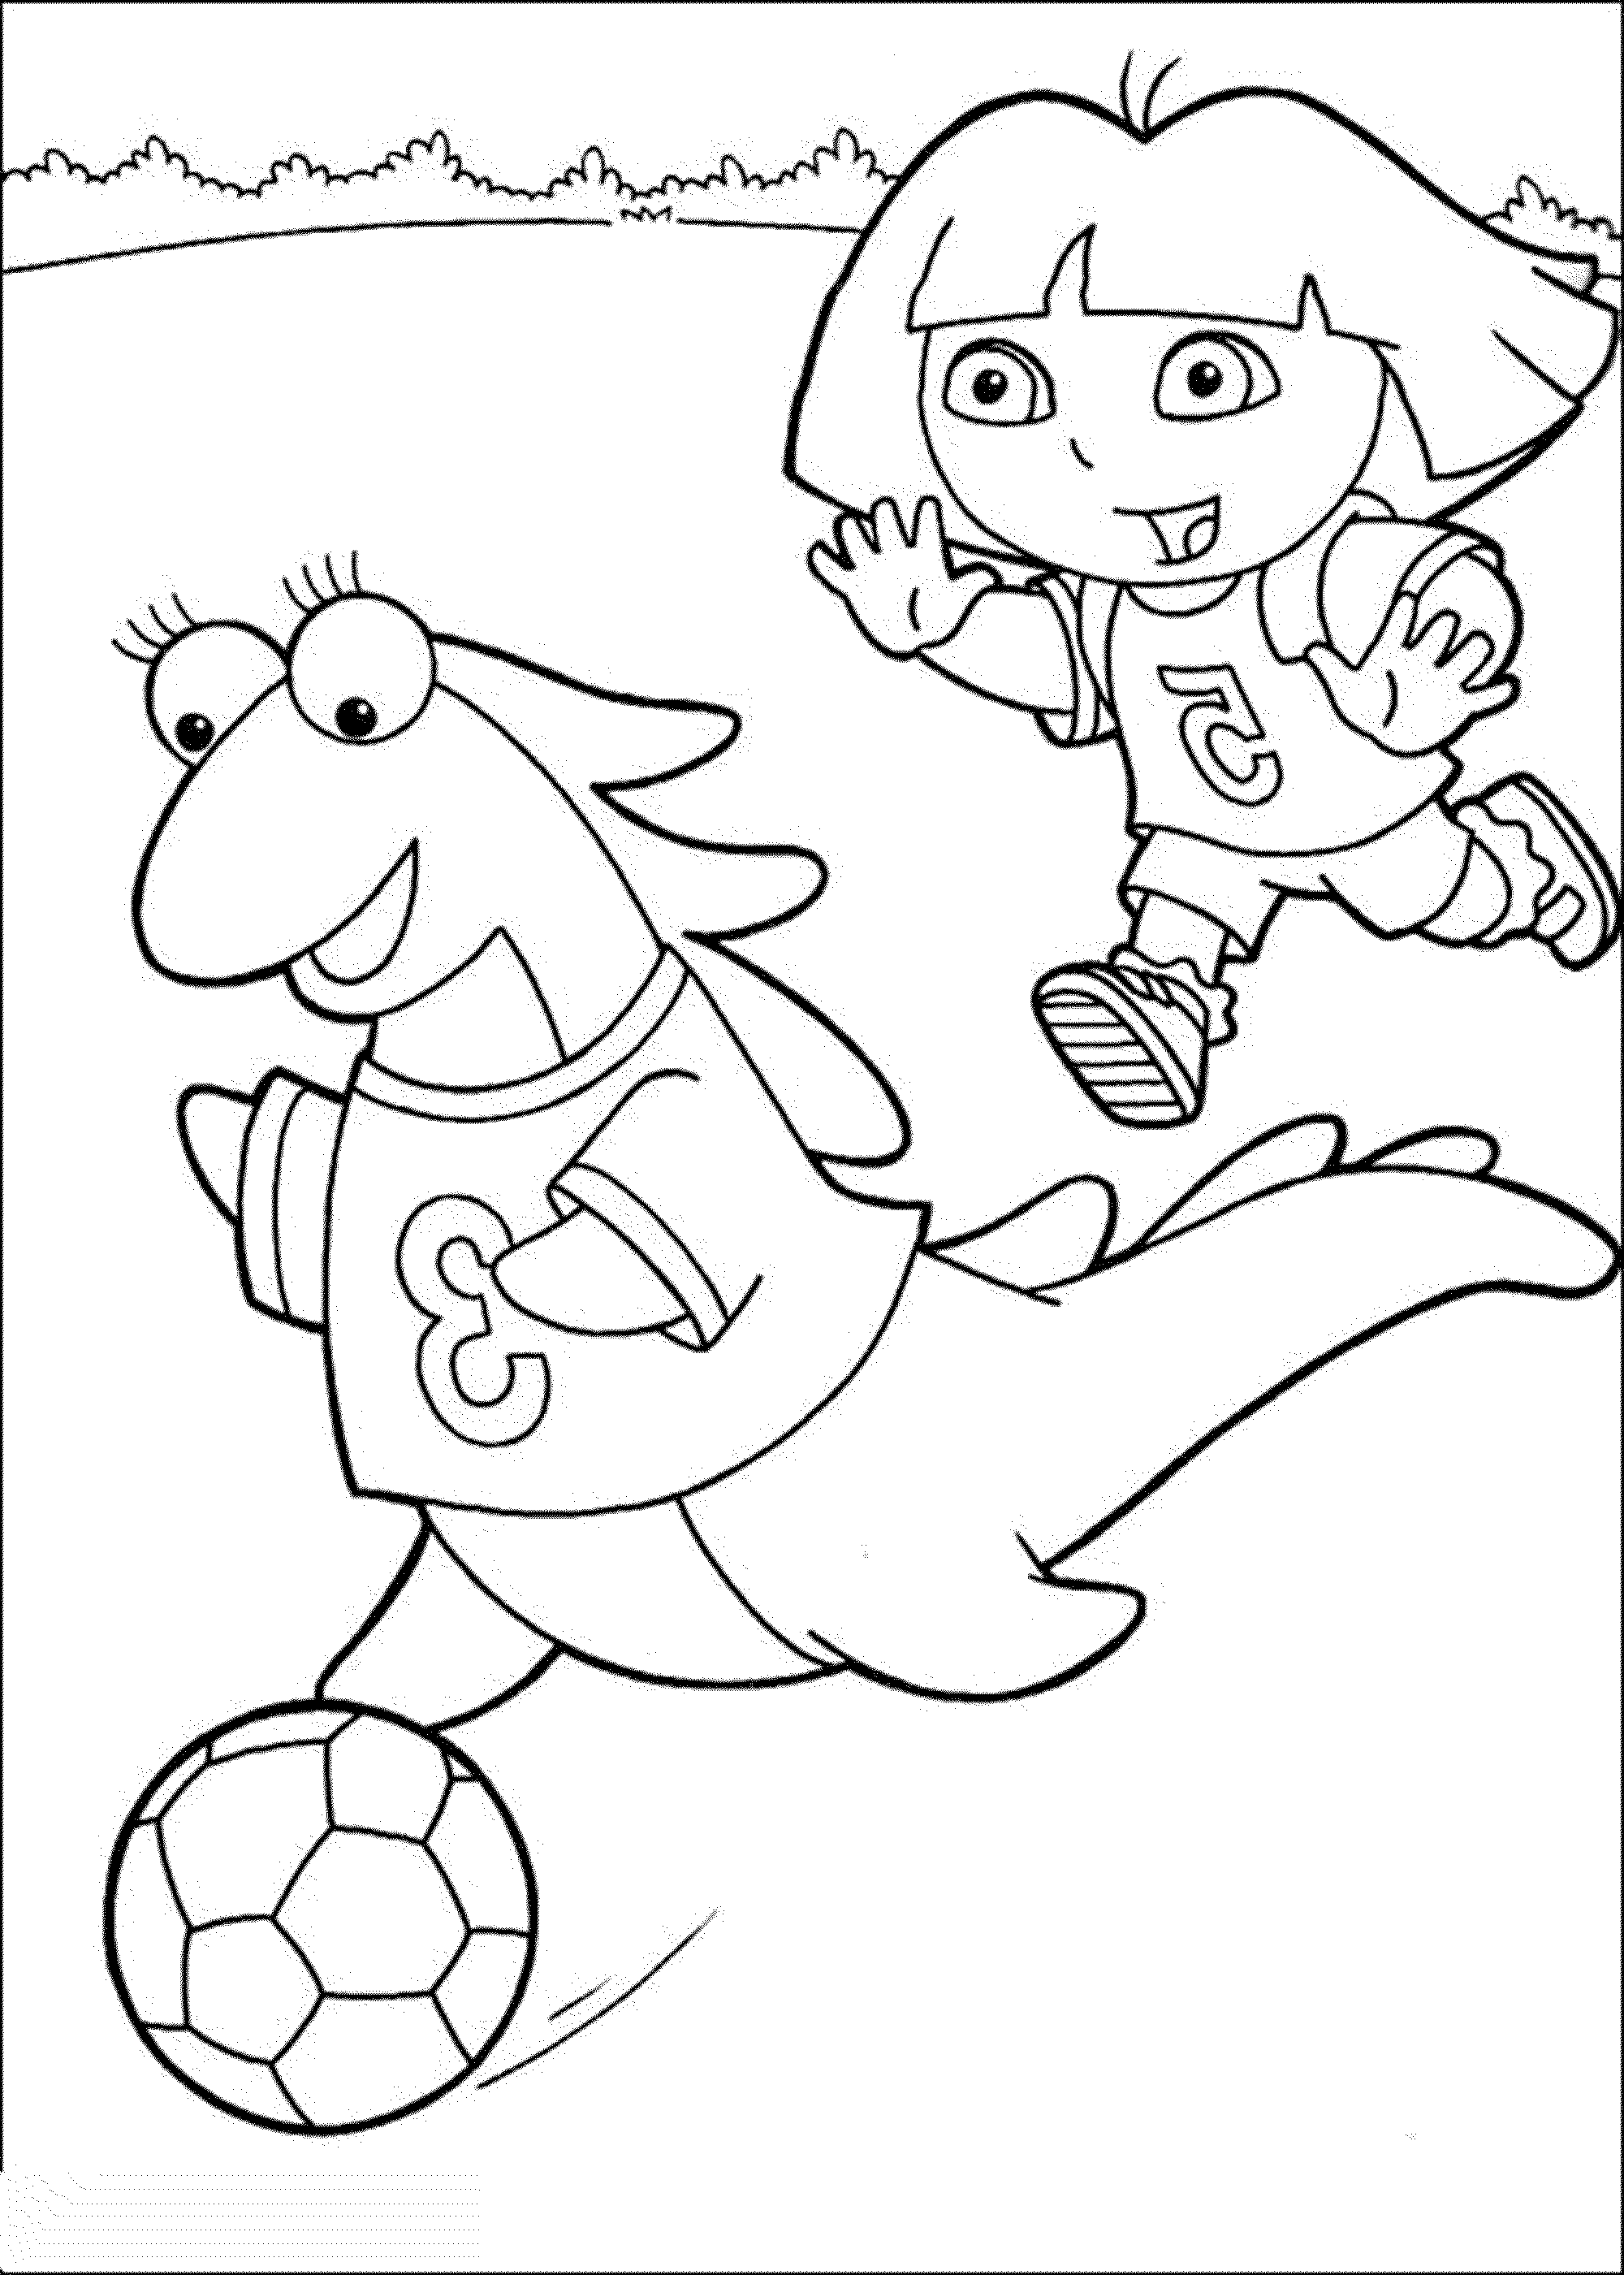 dora pictures to color and print dora the explorer coloring pages cartoon coloring pages print to color pictures and dora